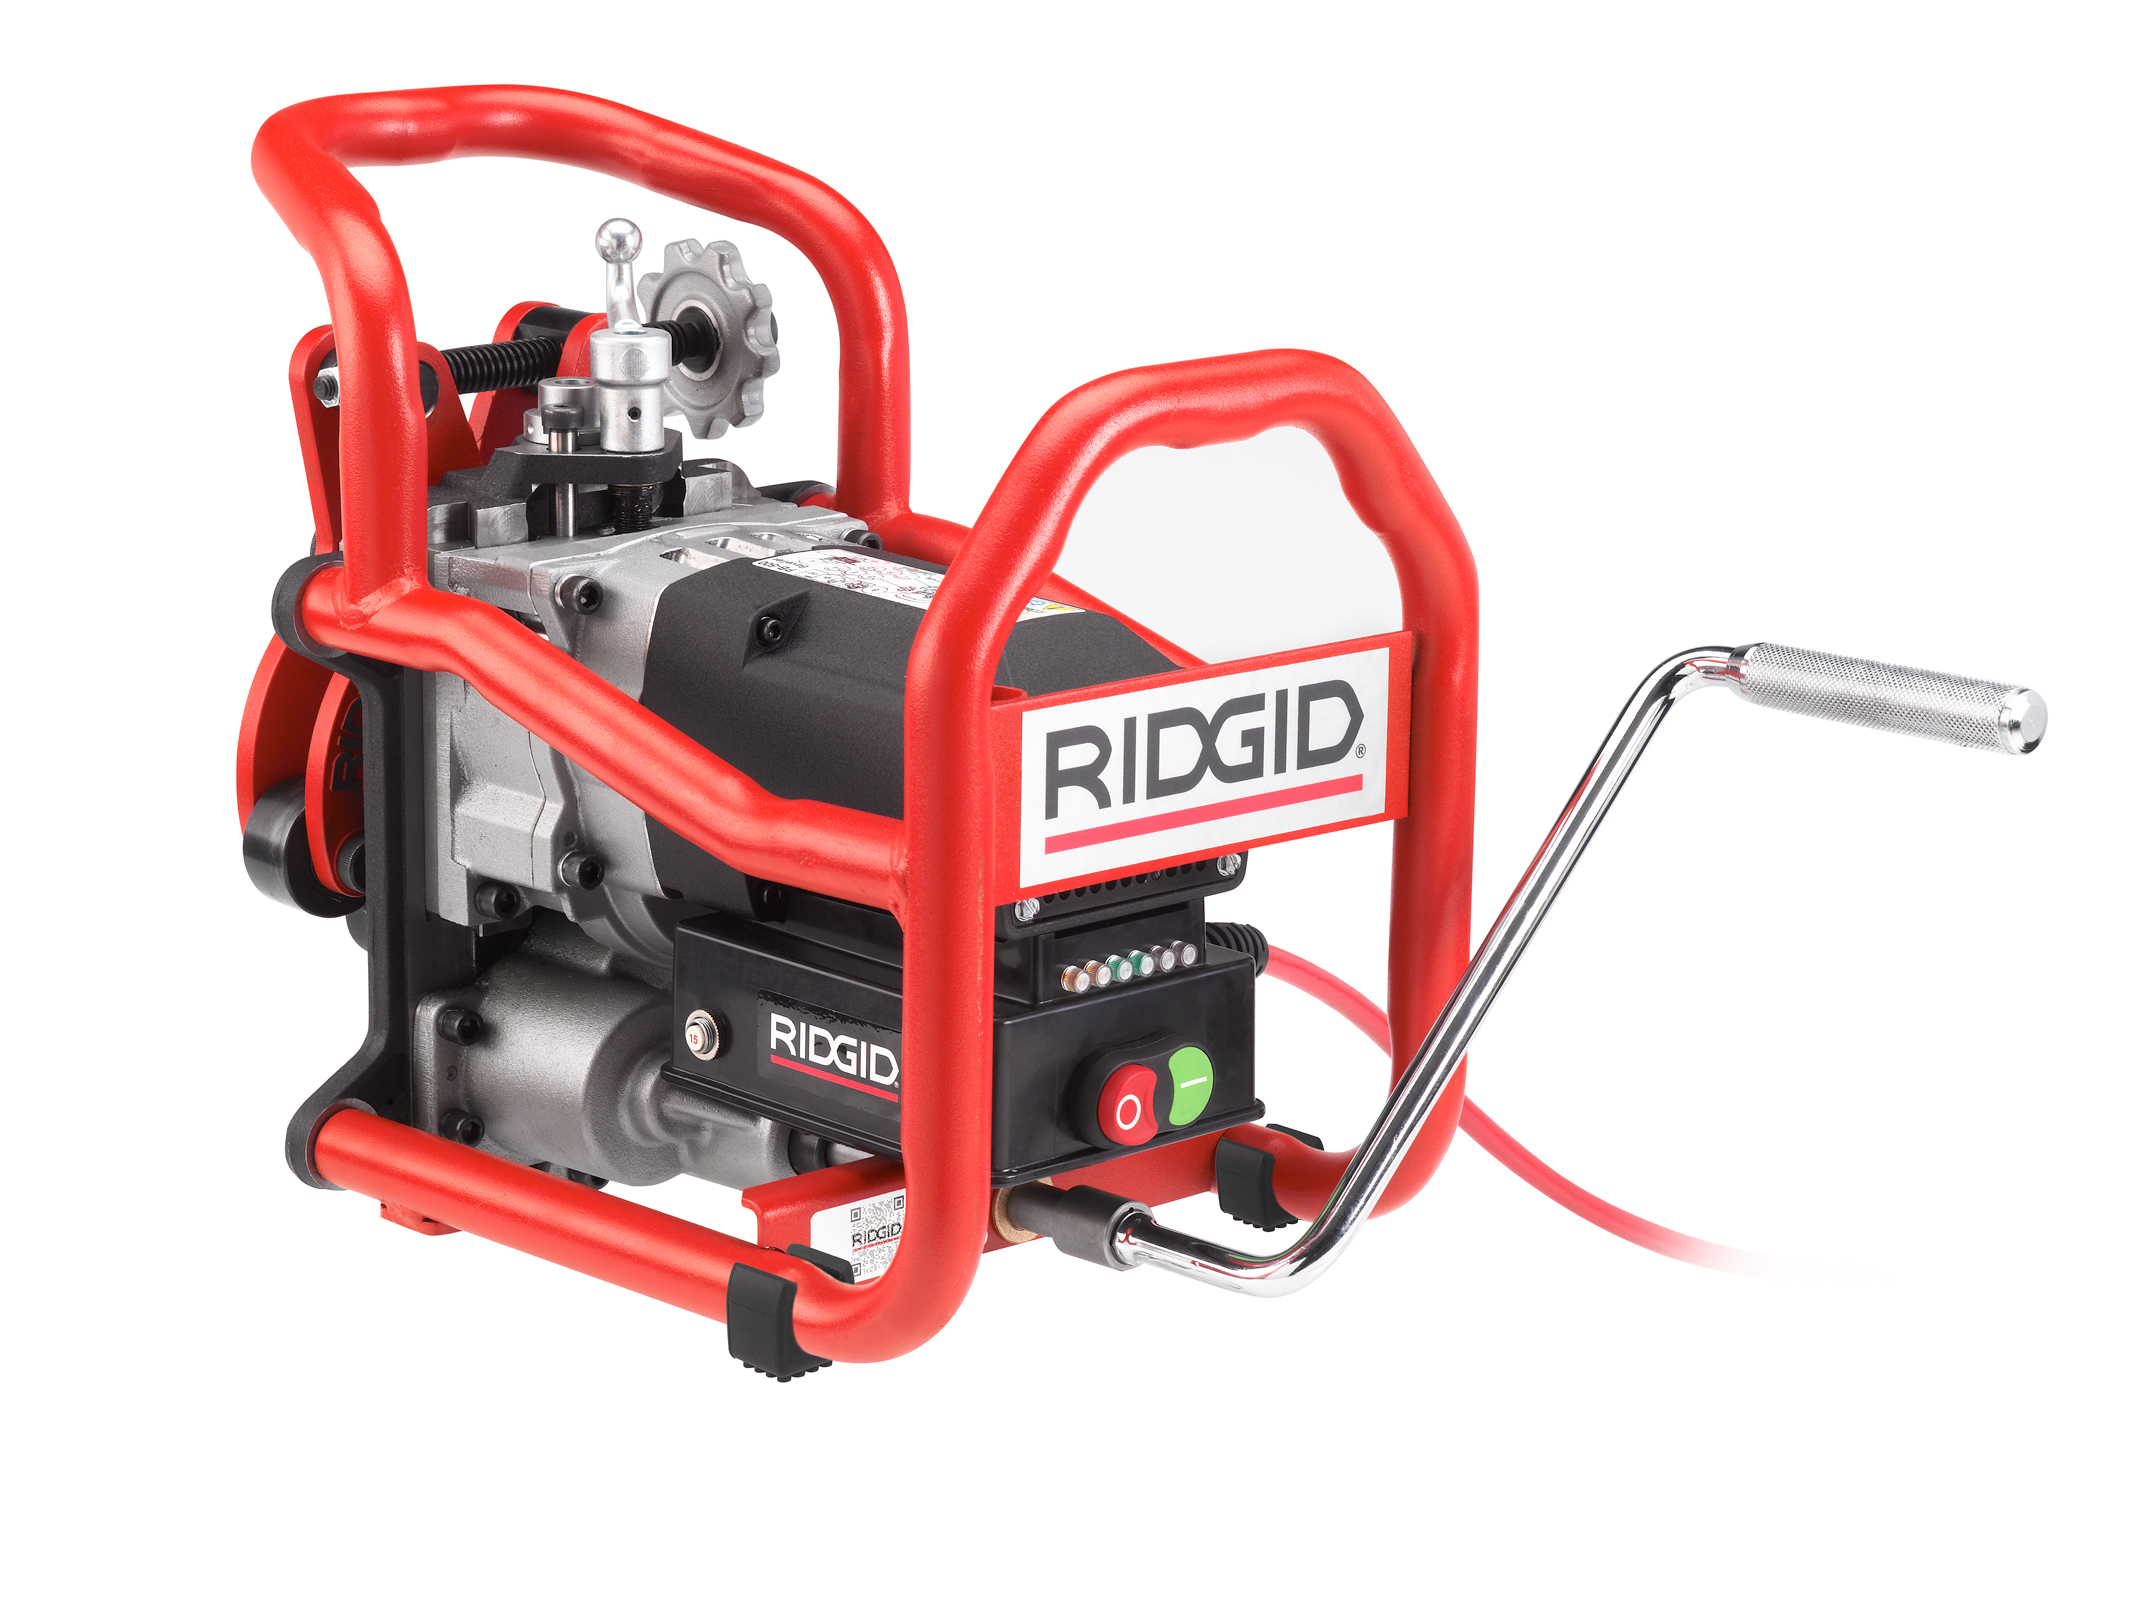 RIDGID 49303 - B-500 Transportable Pipe Beveller w/371/2° Cutter Head 220v